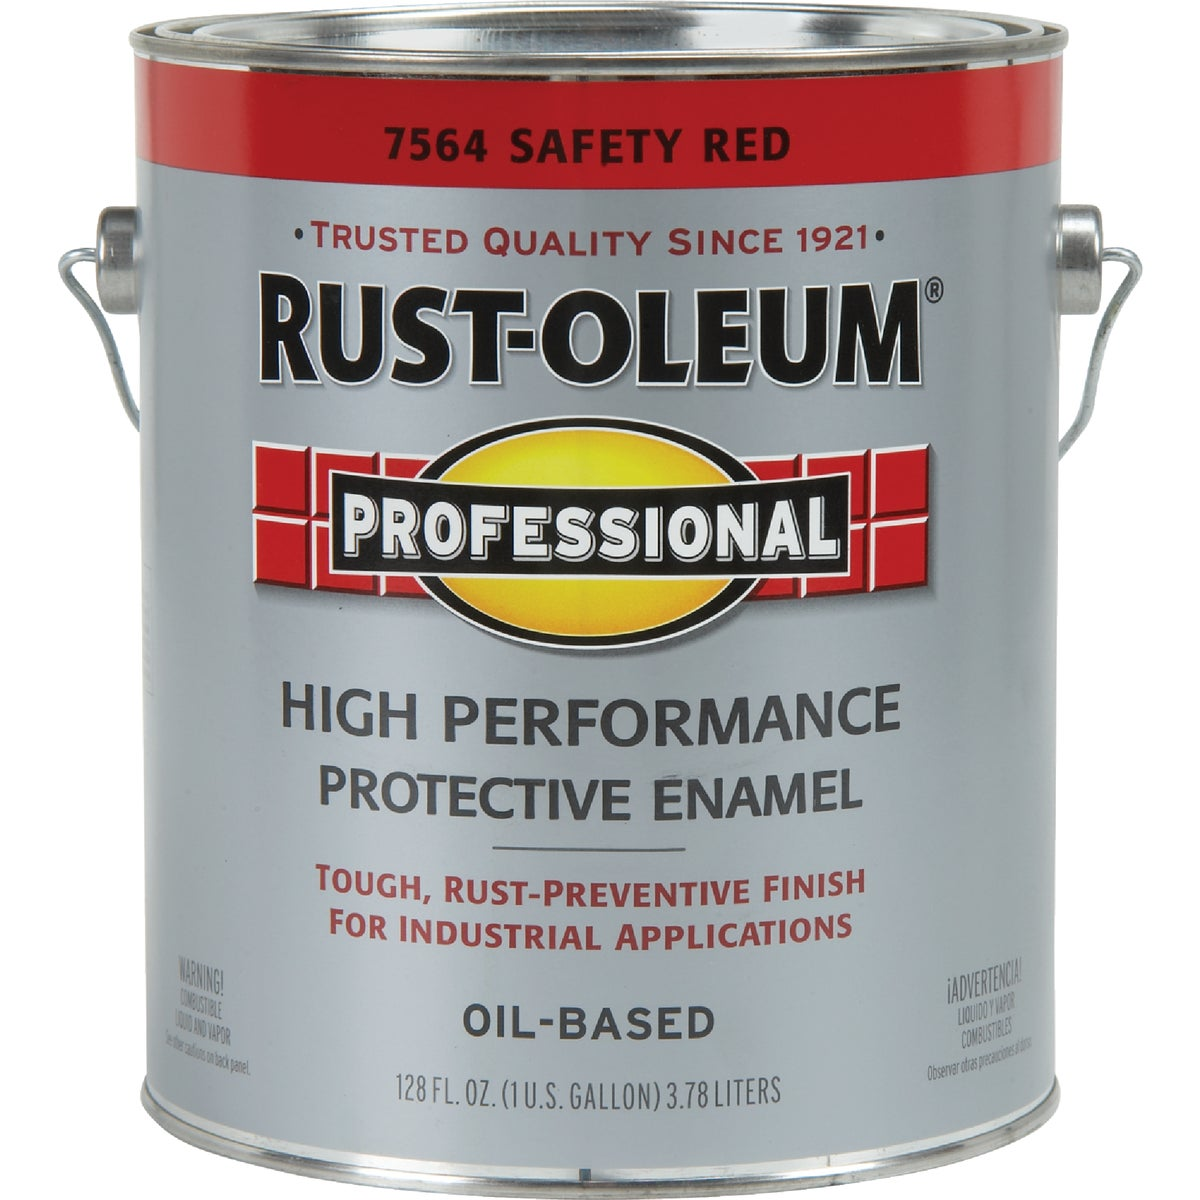 SAFETY RED PRO ENAMEL - 7564-402 by Rustoleum